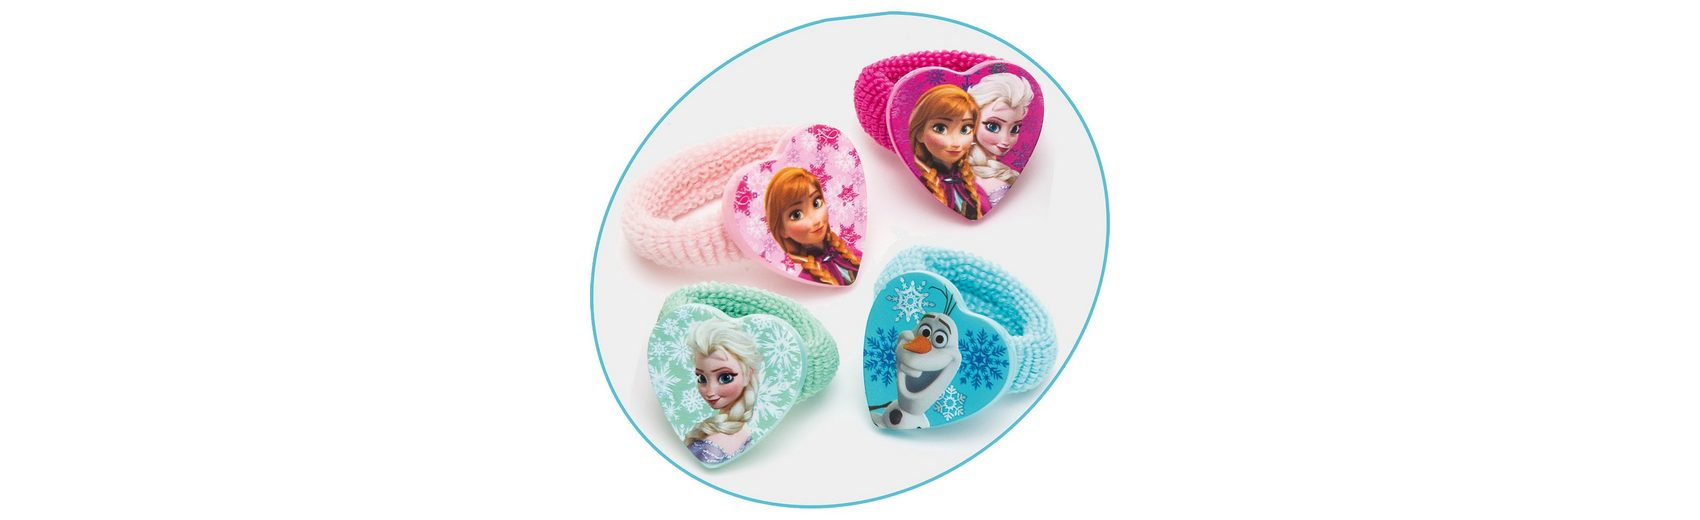 JOY TOY Zöpfchenhalter Disney Princess Frozen, 4 Motive